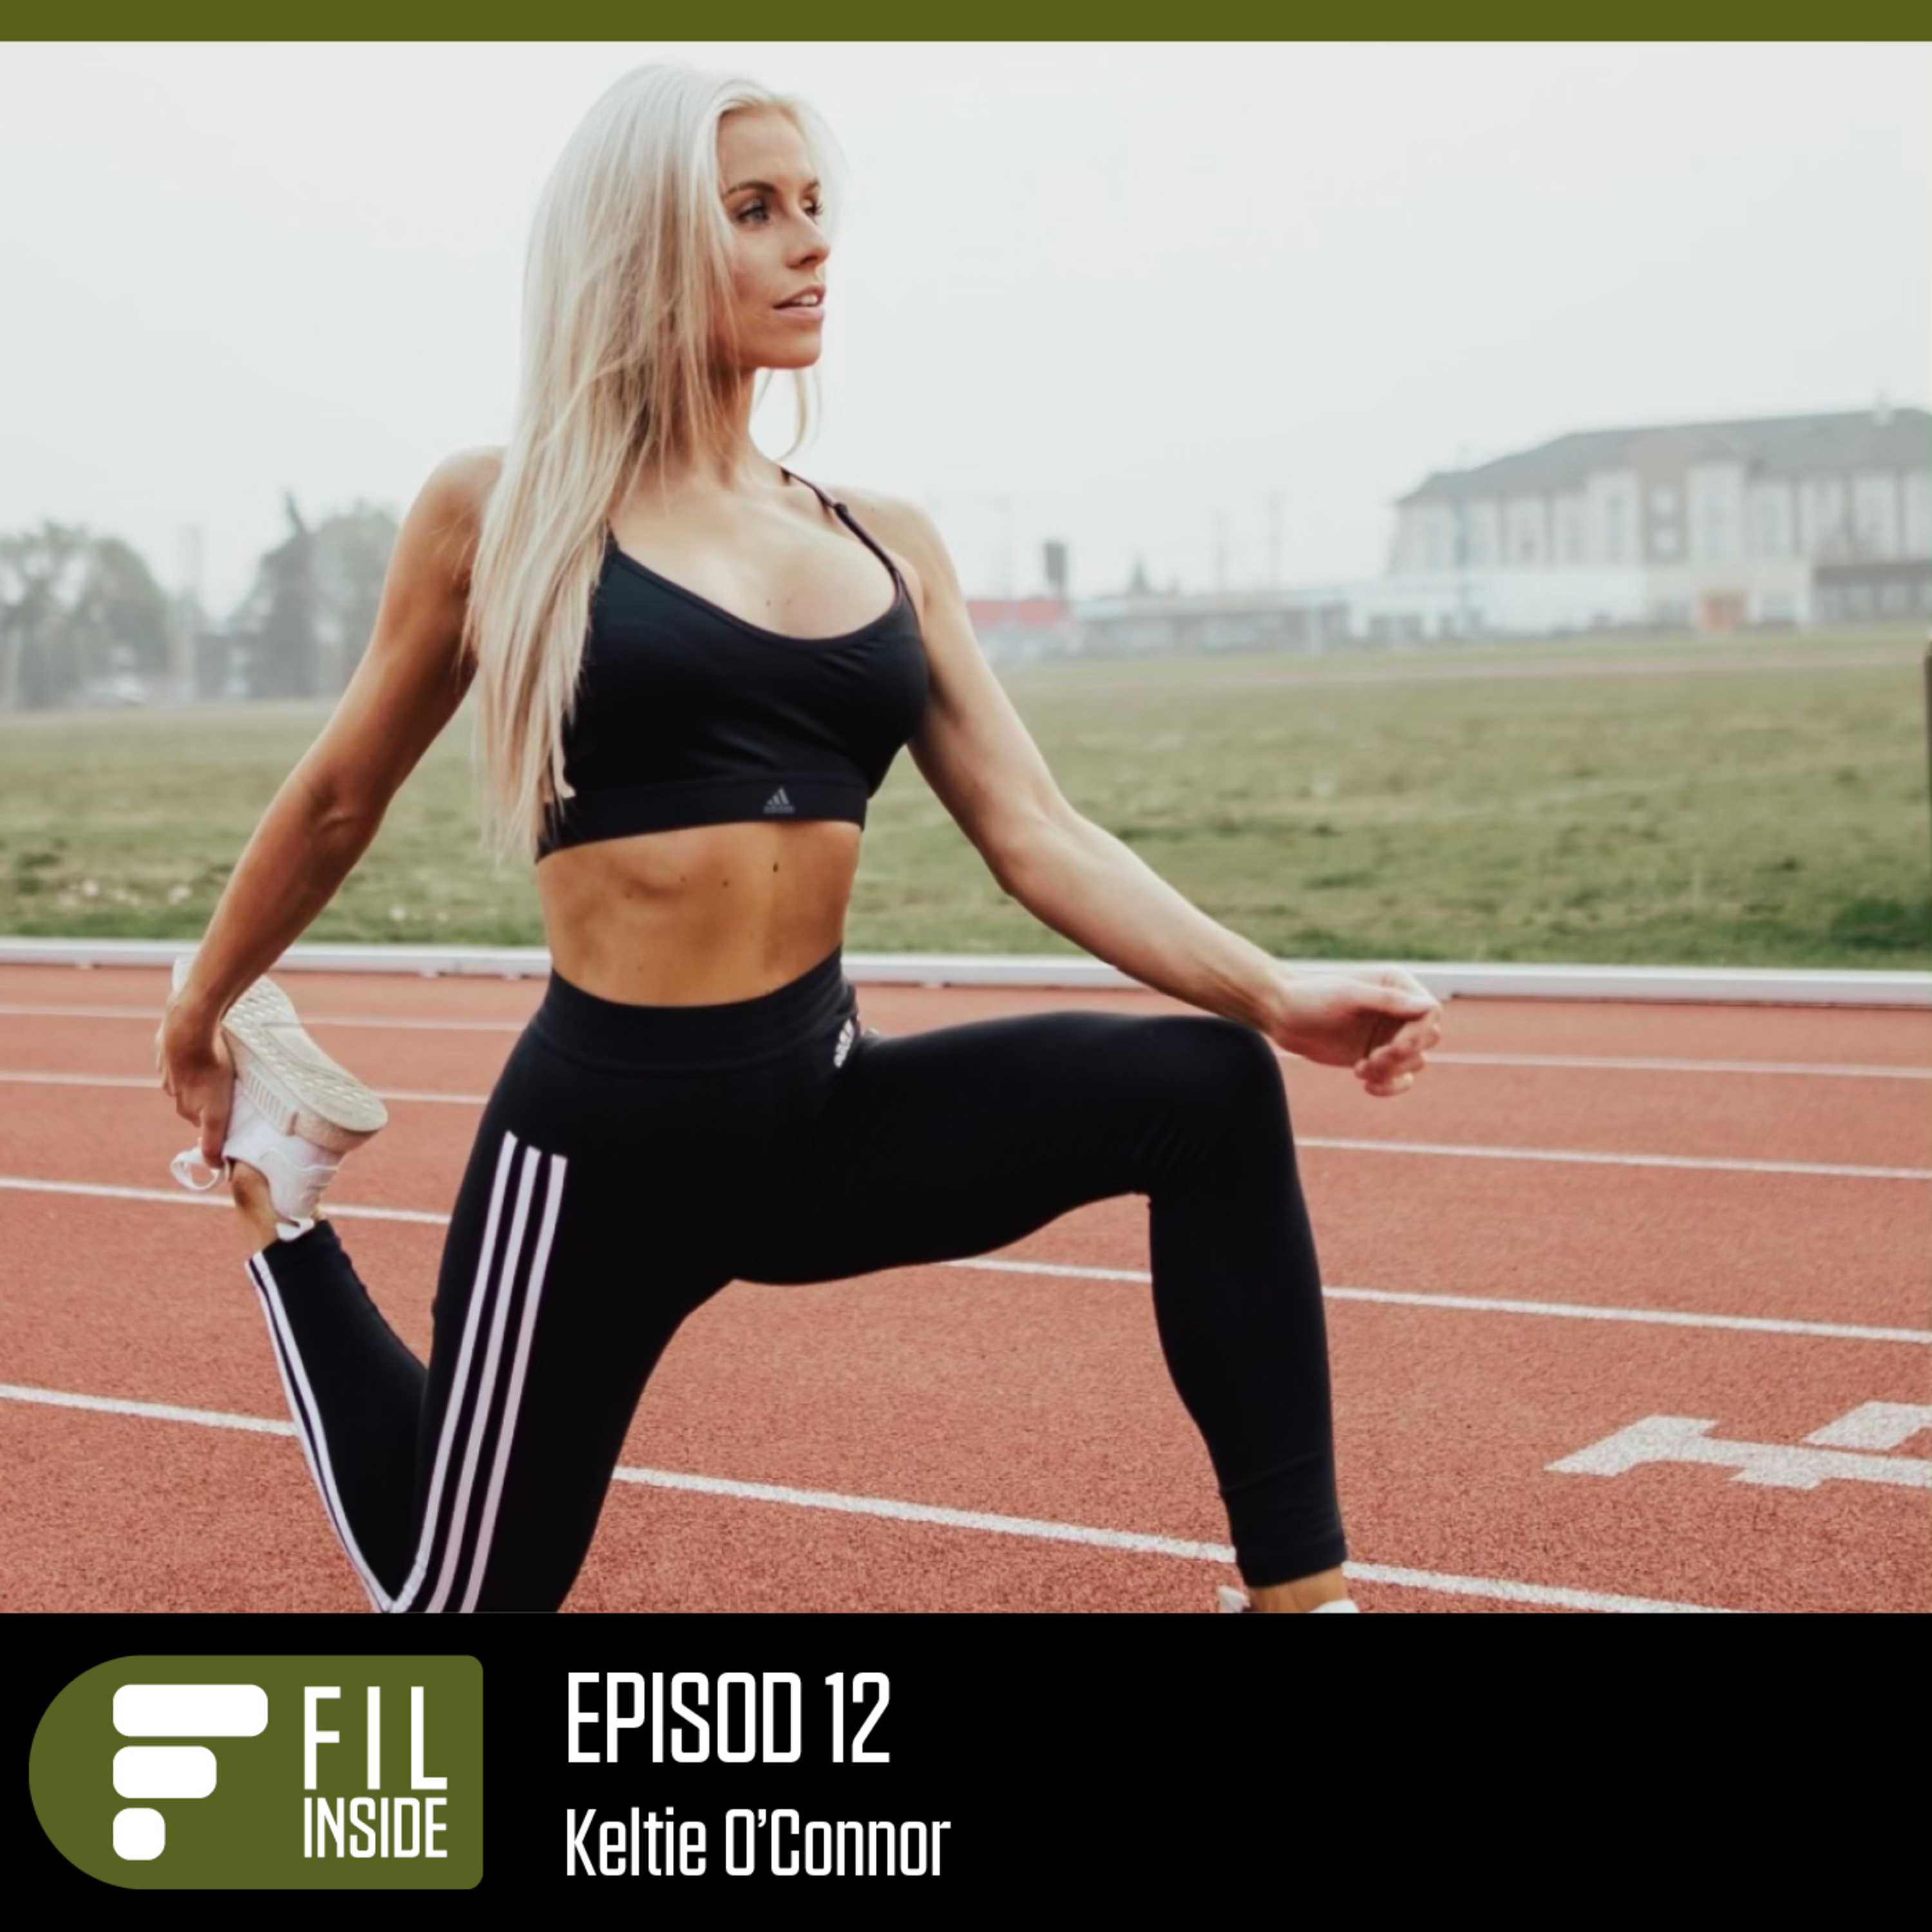 FIL Inside: The athletes passion is a force also for entrepreneurship with Keltie O'Connor